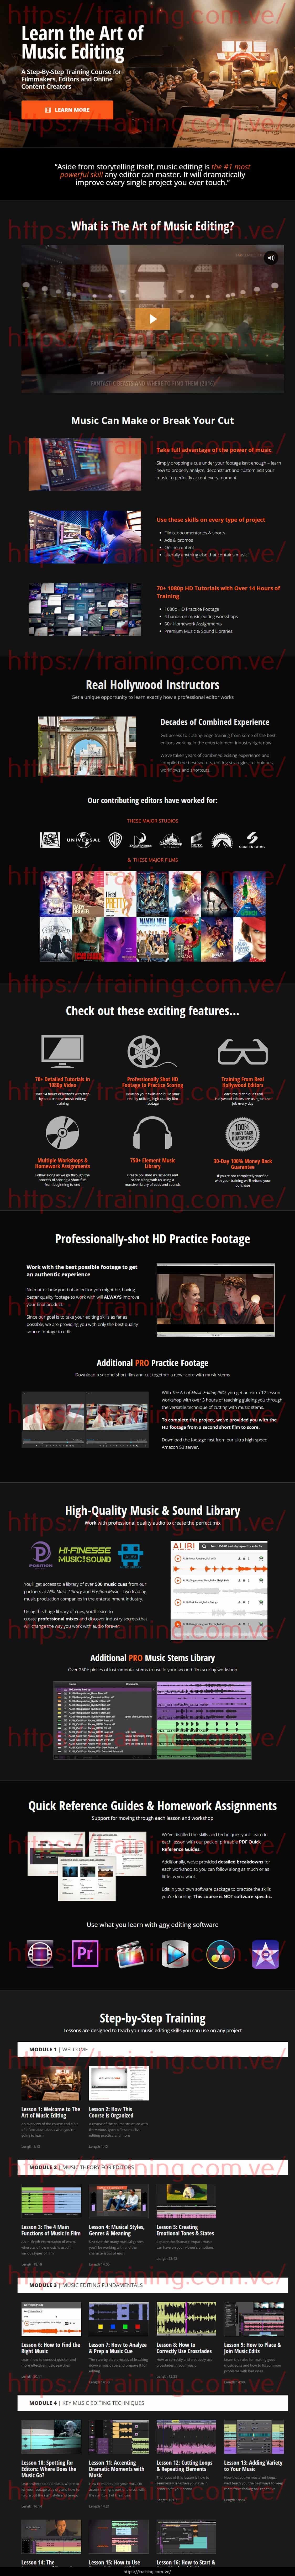 The Art Of Music Editing by Film Editing Pro Sales Page